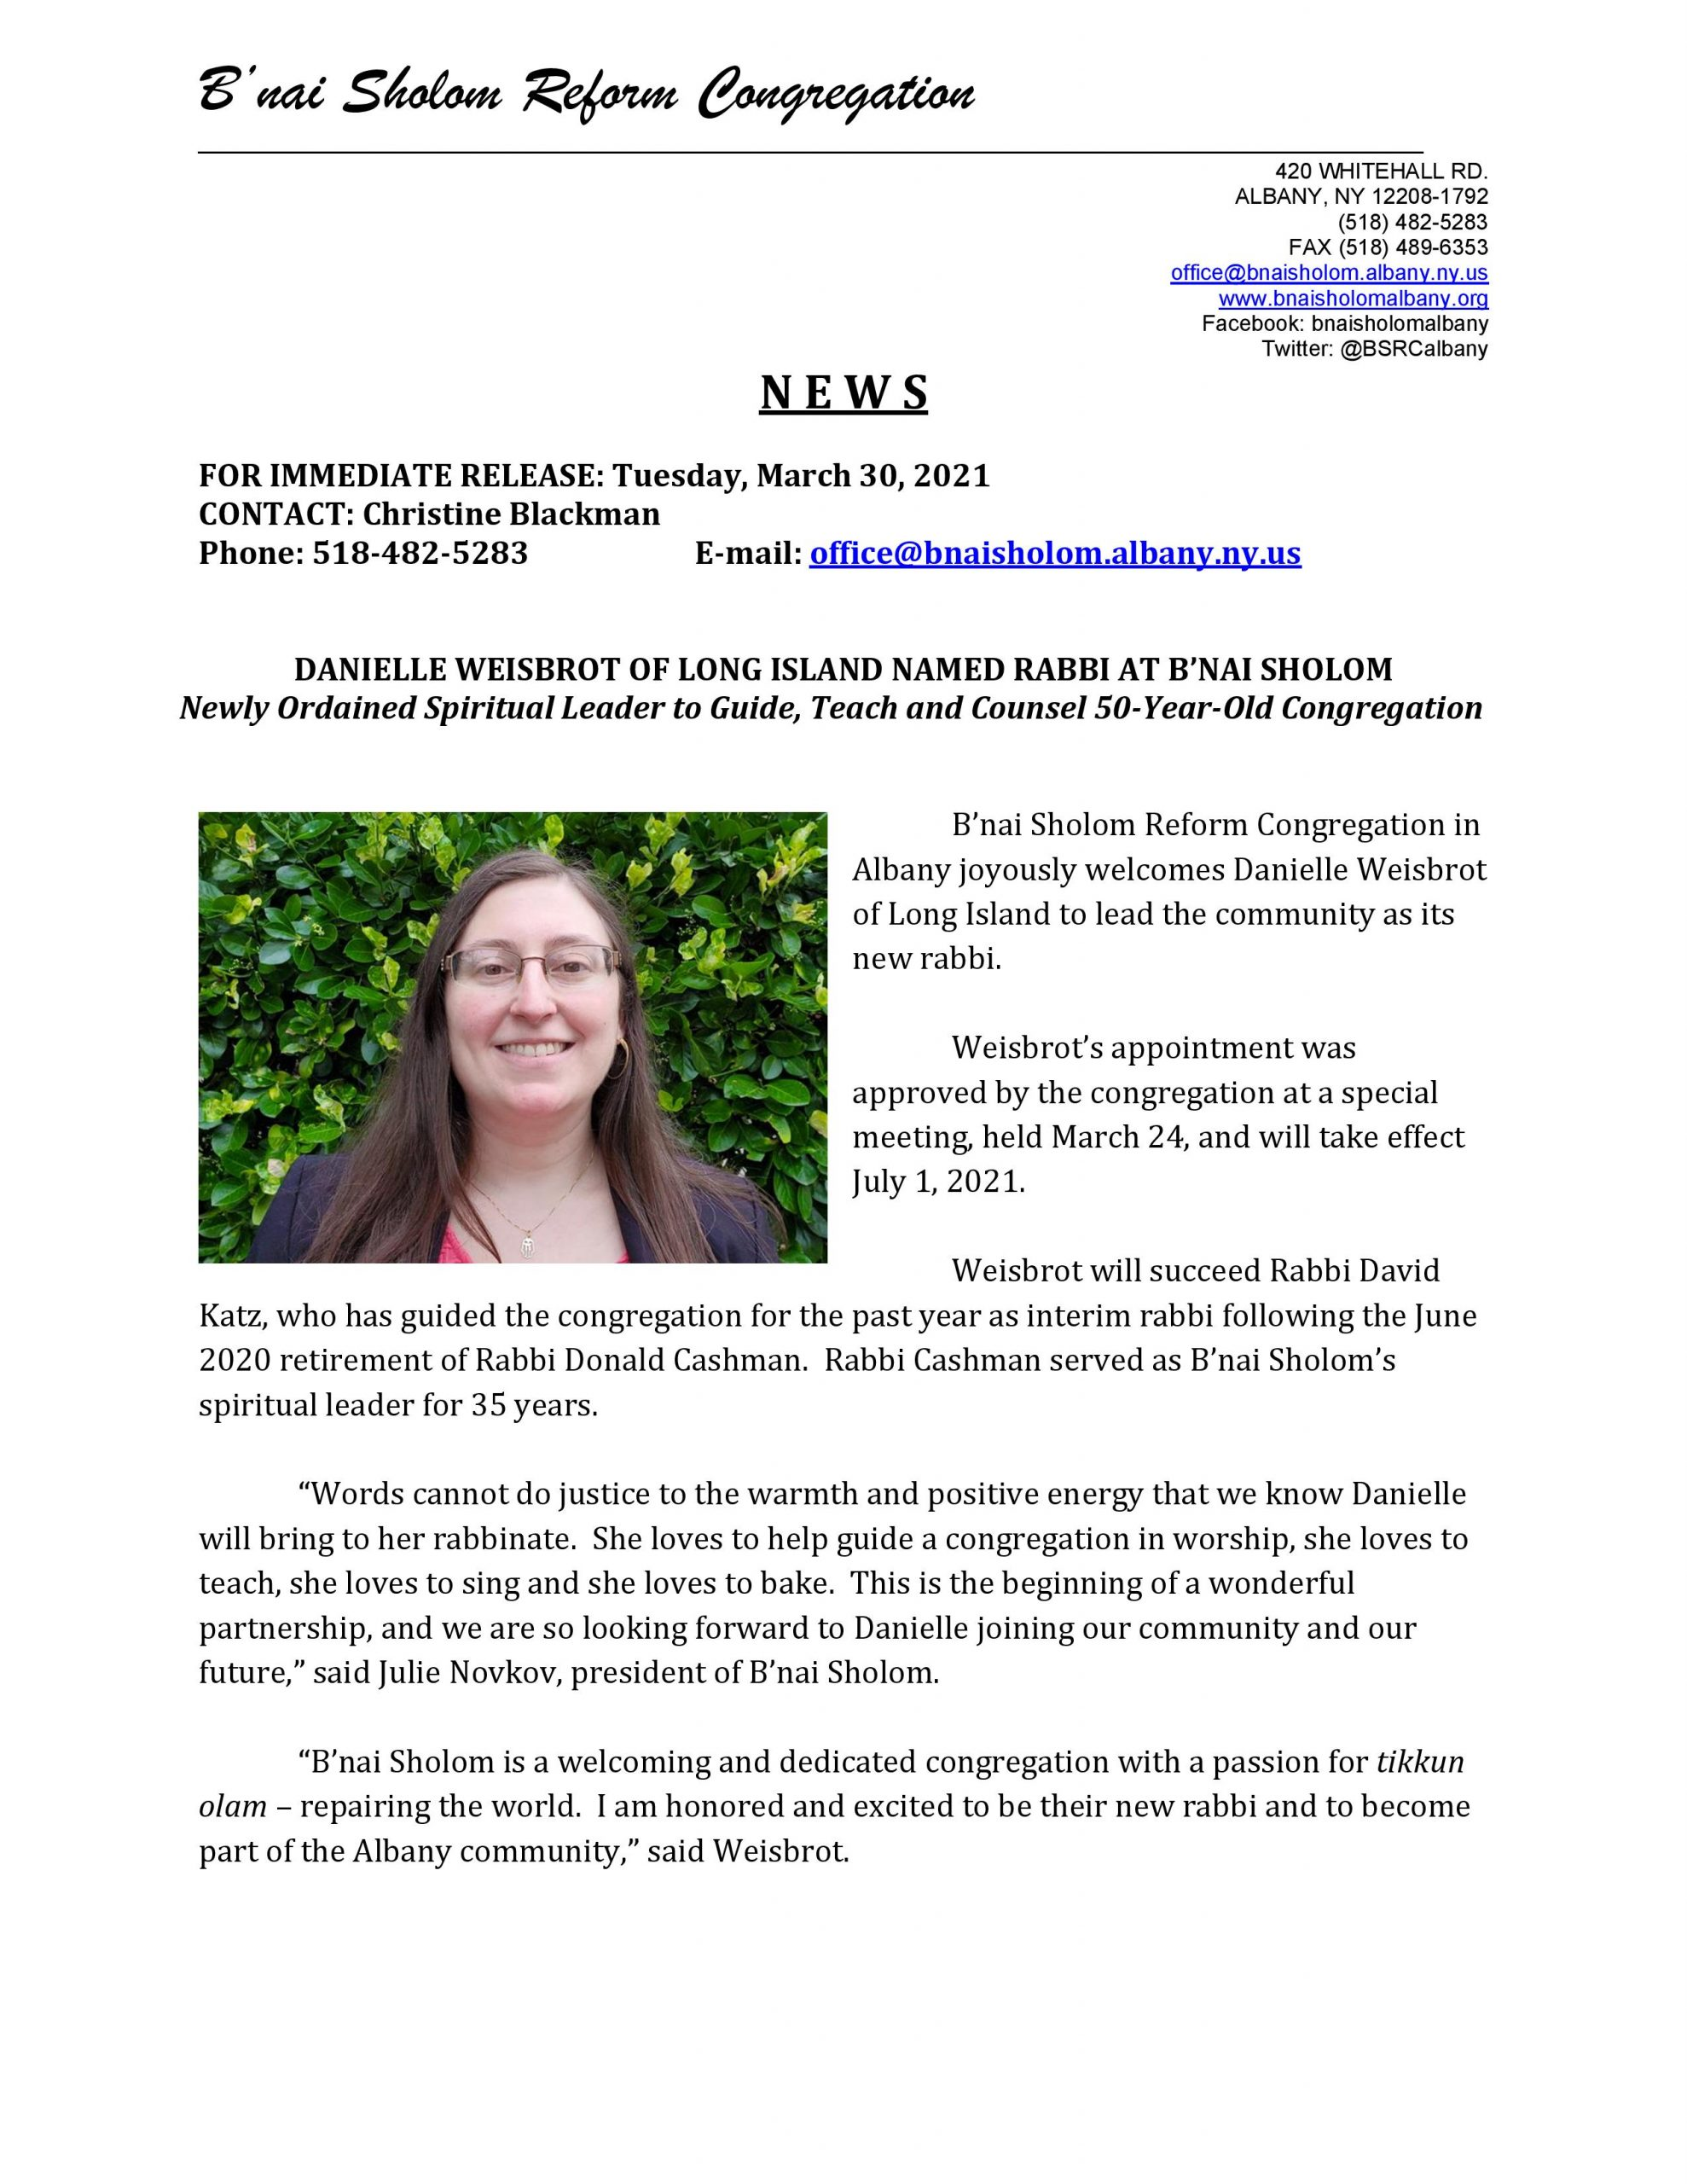 Press Release Annoucing Danielle Weisbrot as new Rabbi